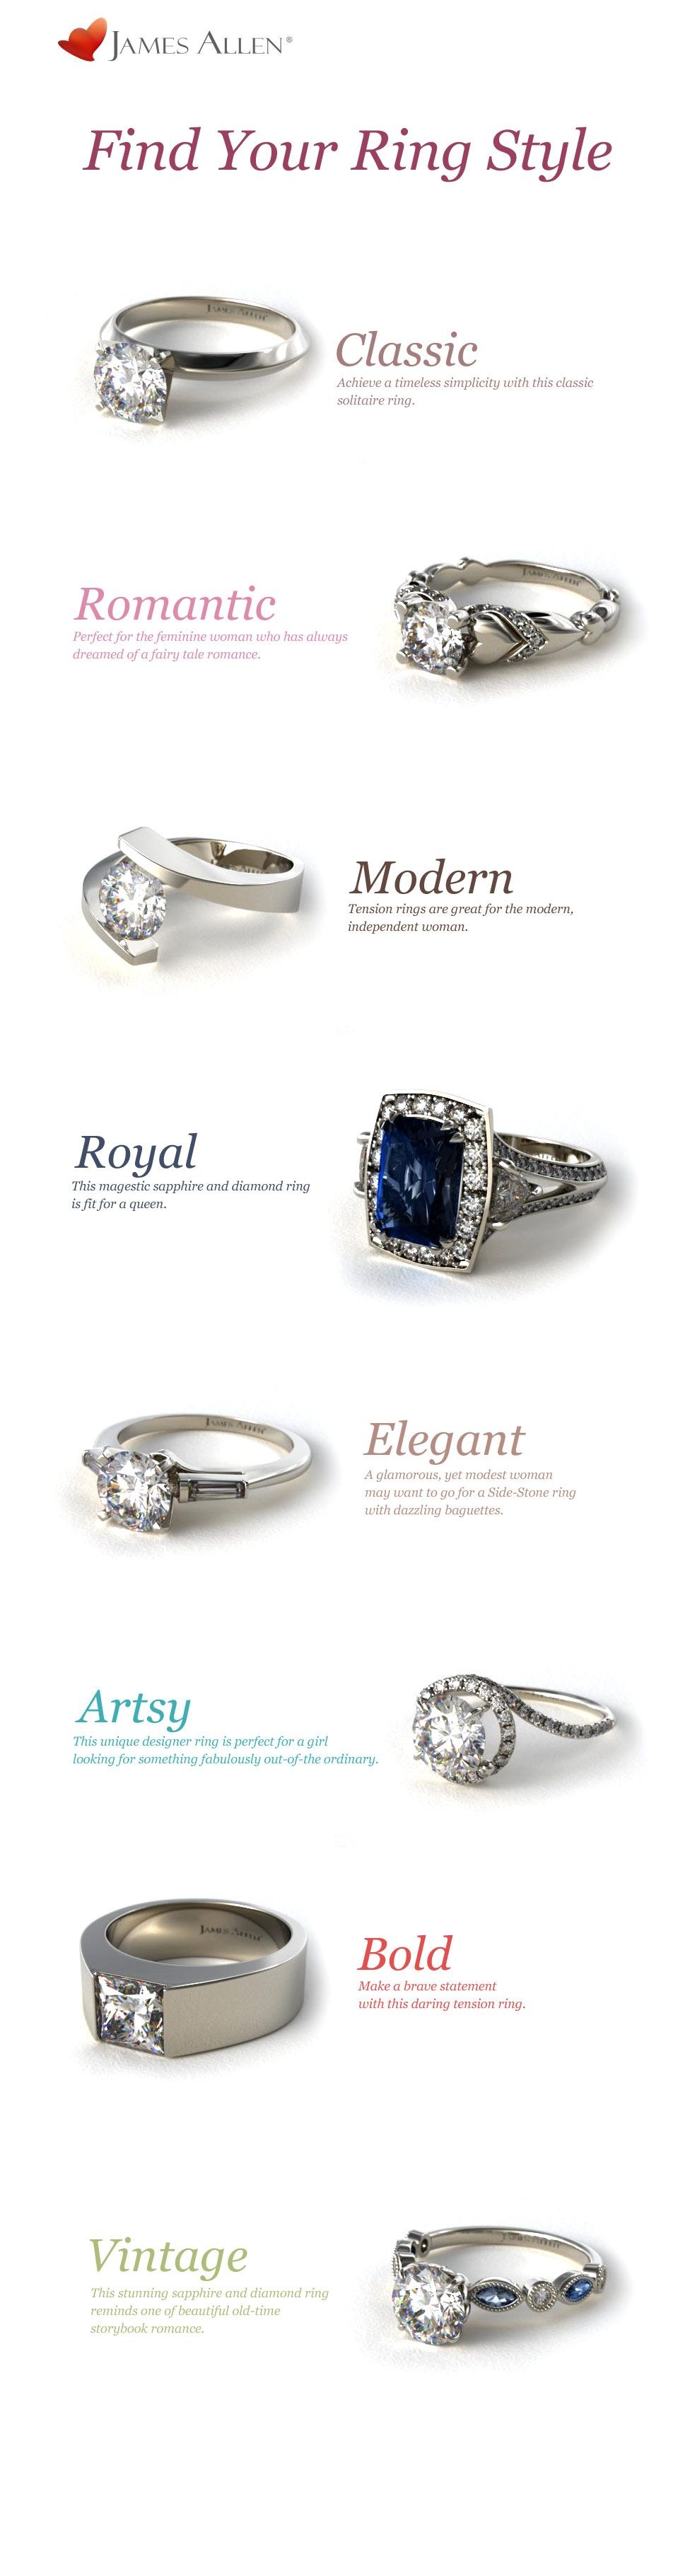 image artsy styles best affordable unique rings beautiful engagement